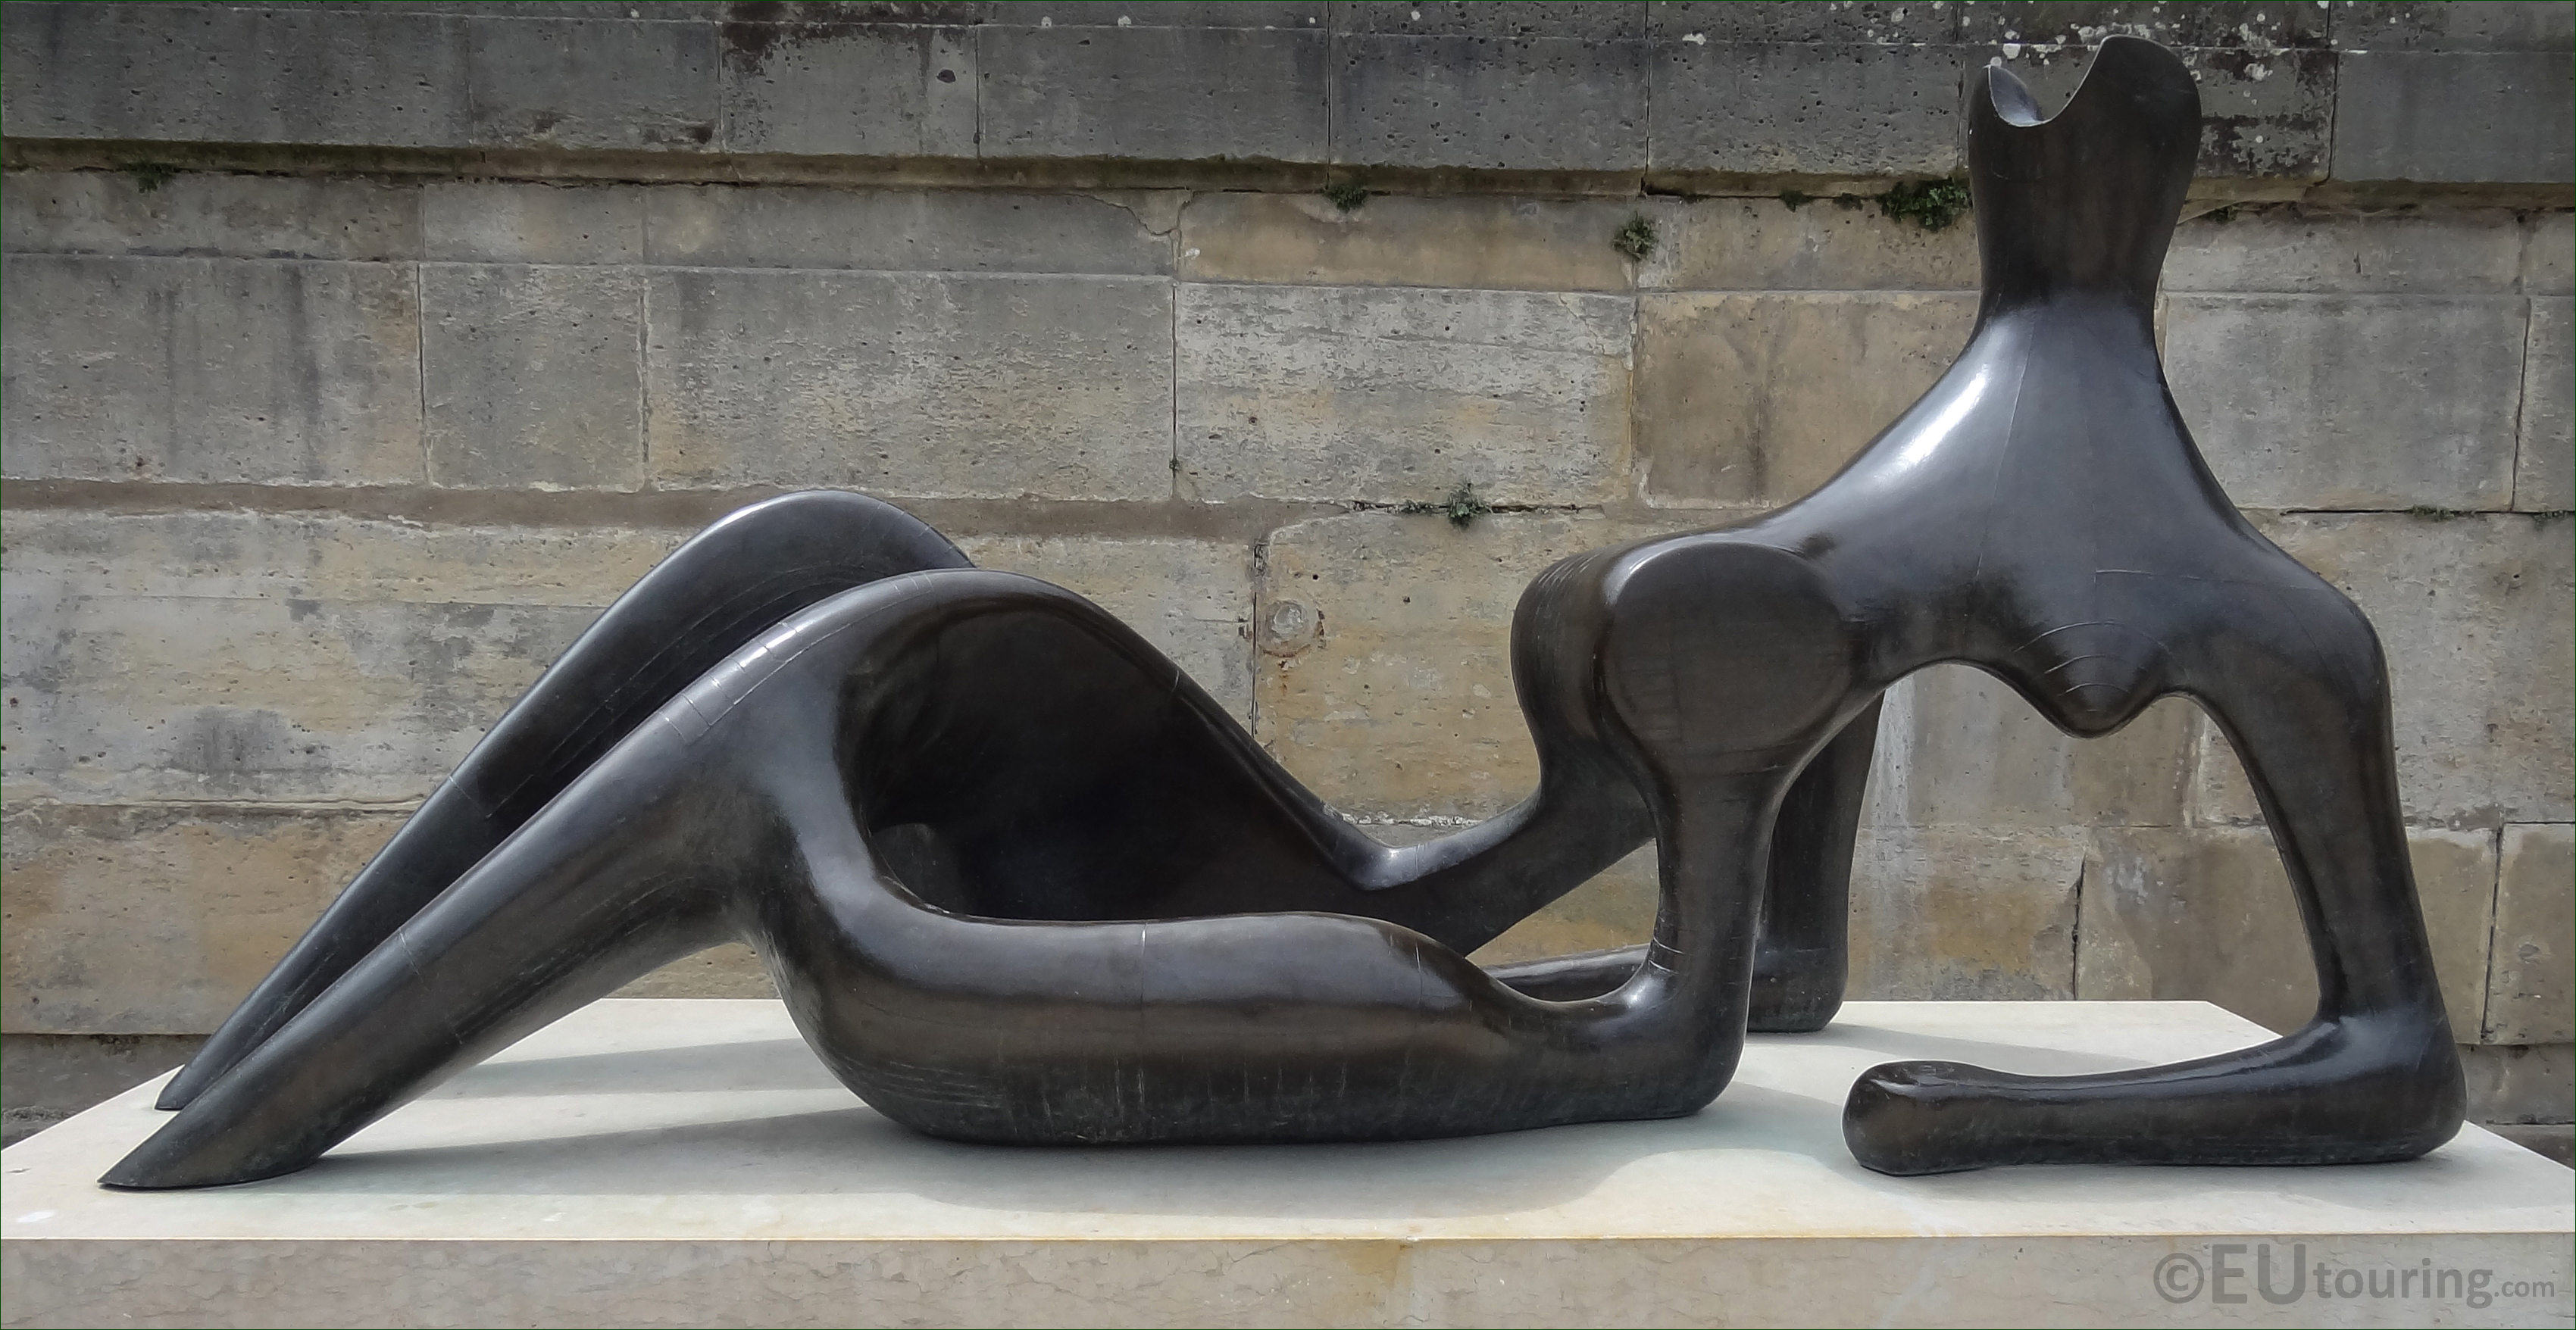 Bronze Reclining Figure Sculpture By English Sculptor Henry Moore & Reclining Figure sculpture inside Jardin des Tuileries - Page 81 islam-shia.org